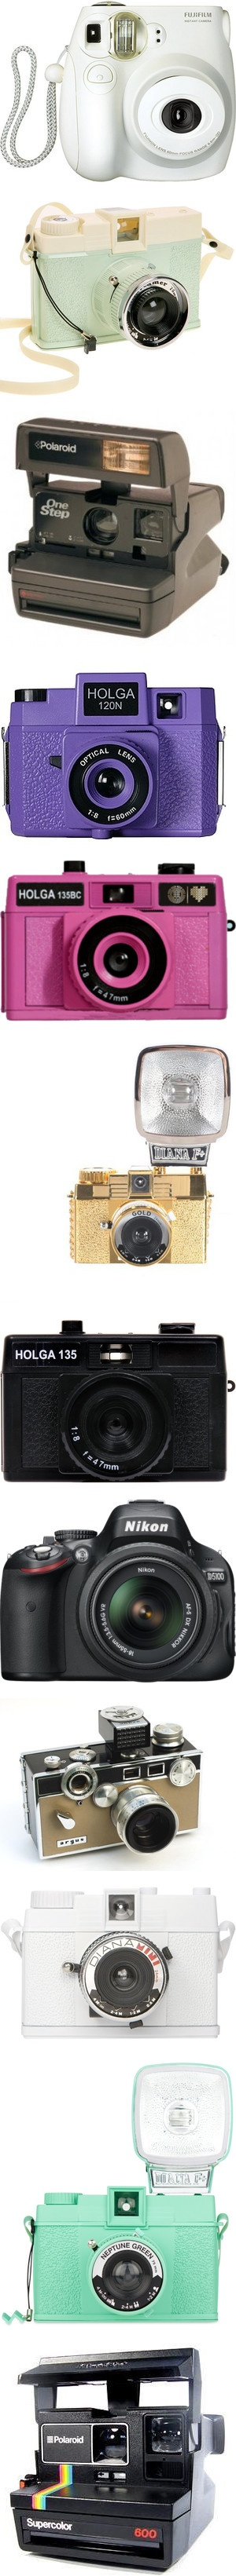 """""""Cameras"""" by victoria-diaz ❤ liked on Polyvore"""